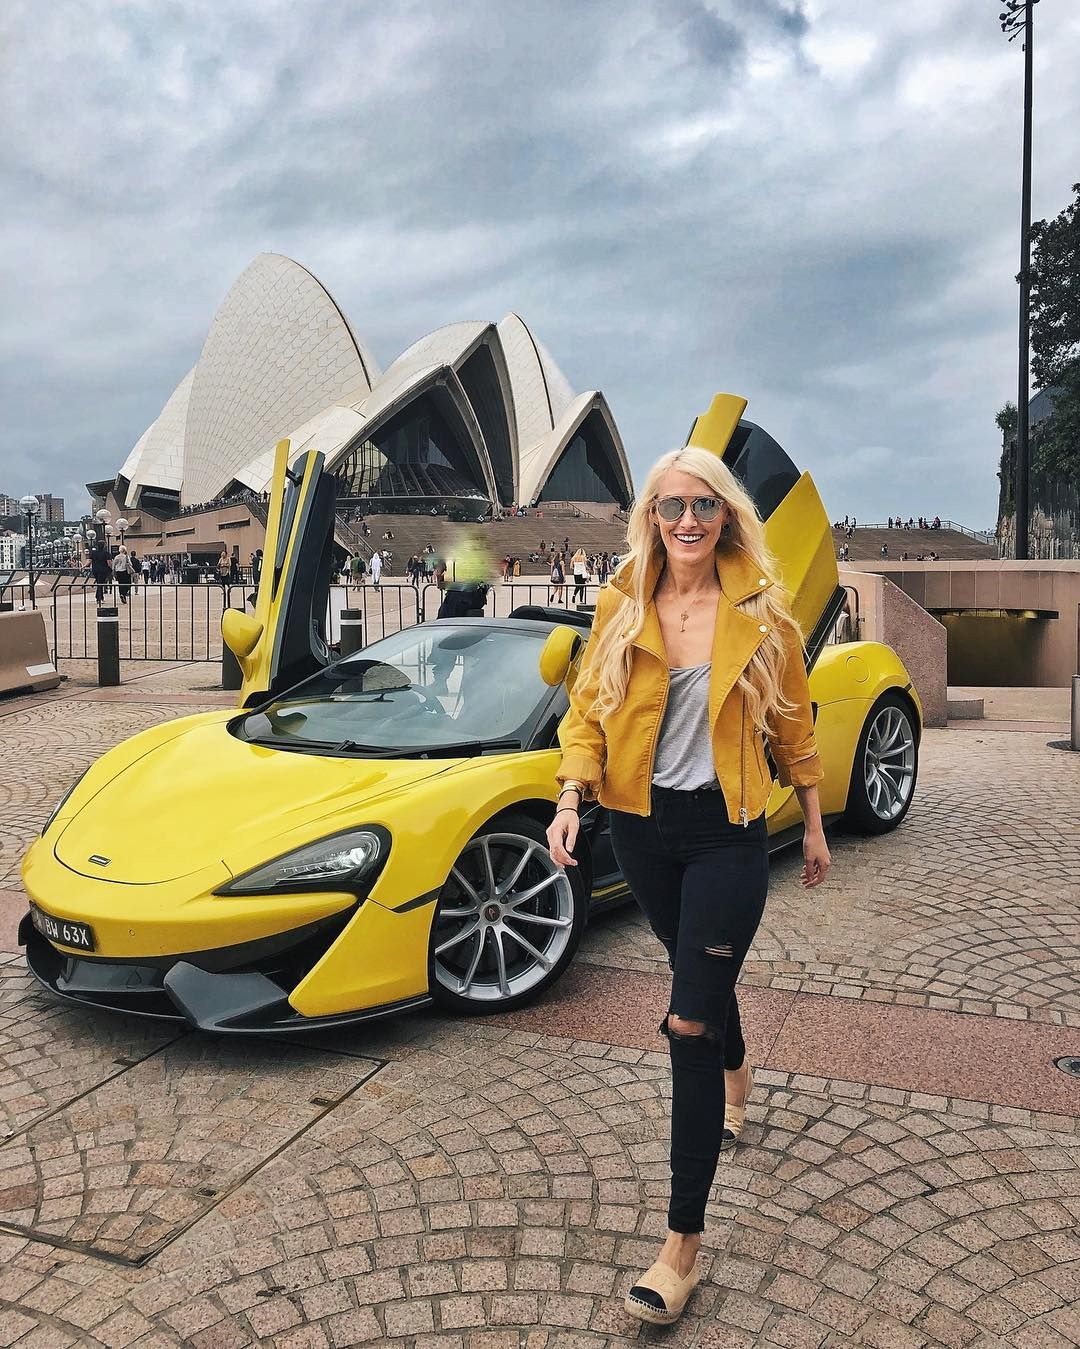 I M Not Sure If Throw Back Thursdays Is Even A Thing Anymore But The Fact I Managed To Match My Jacket To This Mclaren Is Car Girls Porsche Models Car